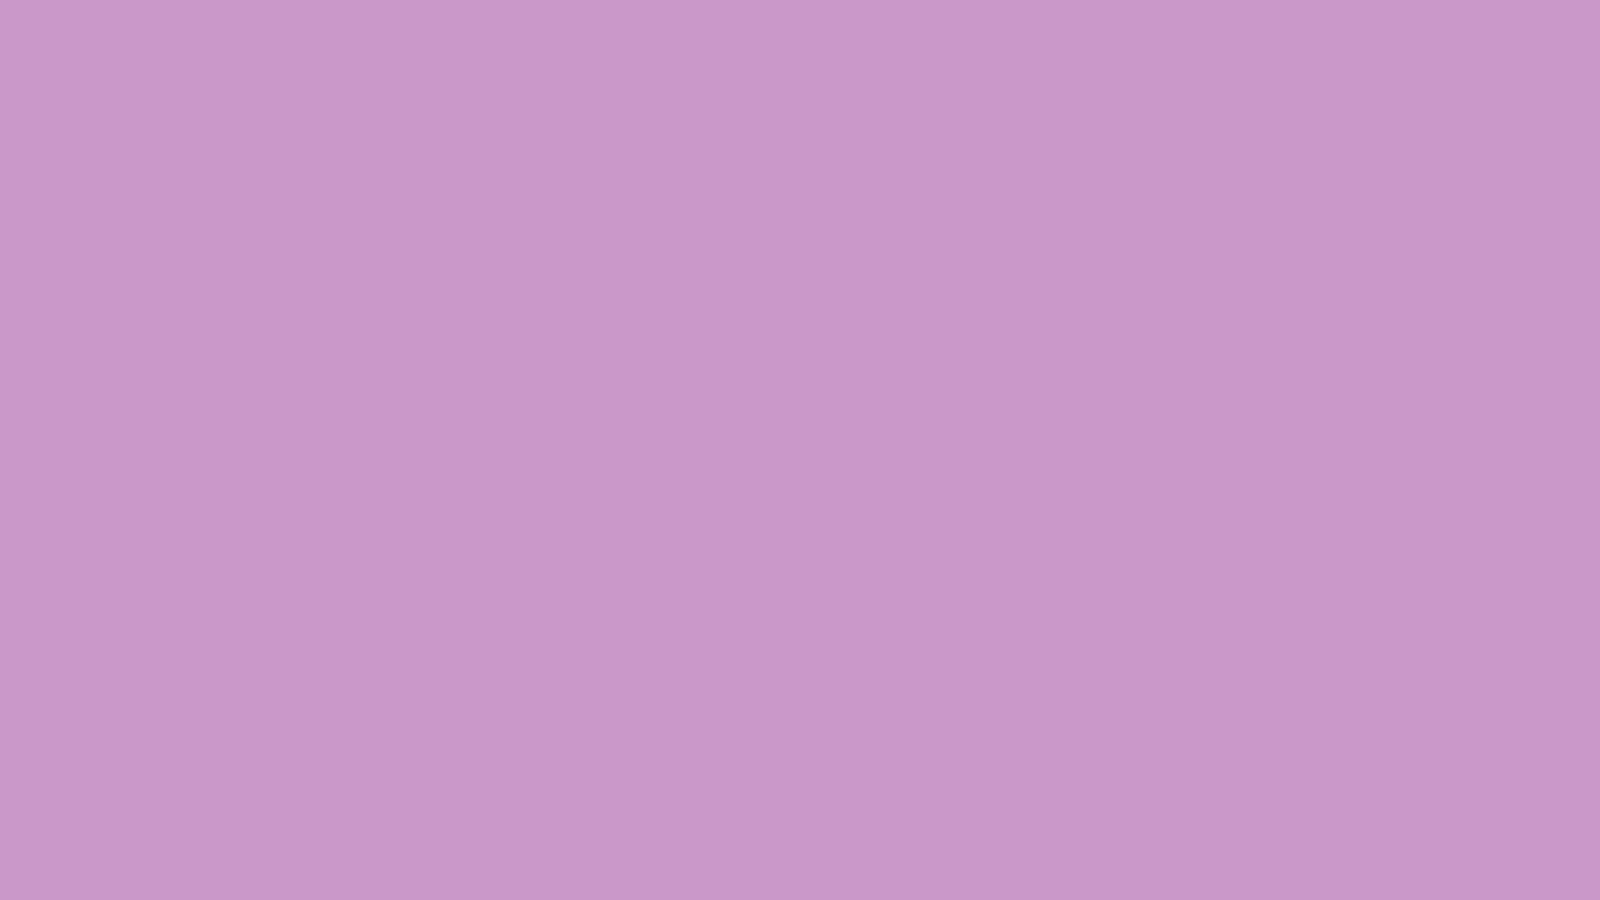 1600x900 Pastel Violet Solid Color Background